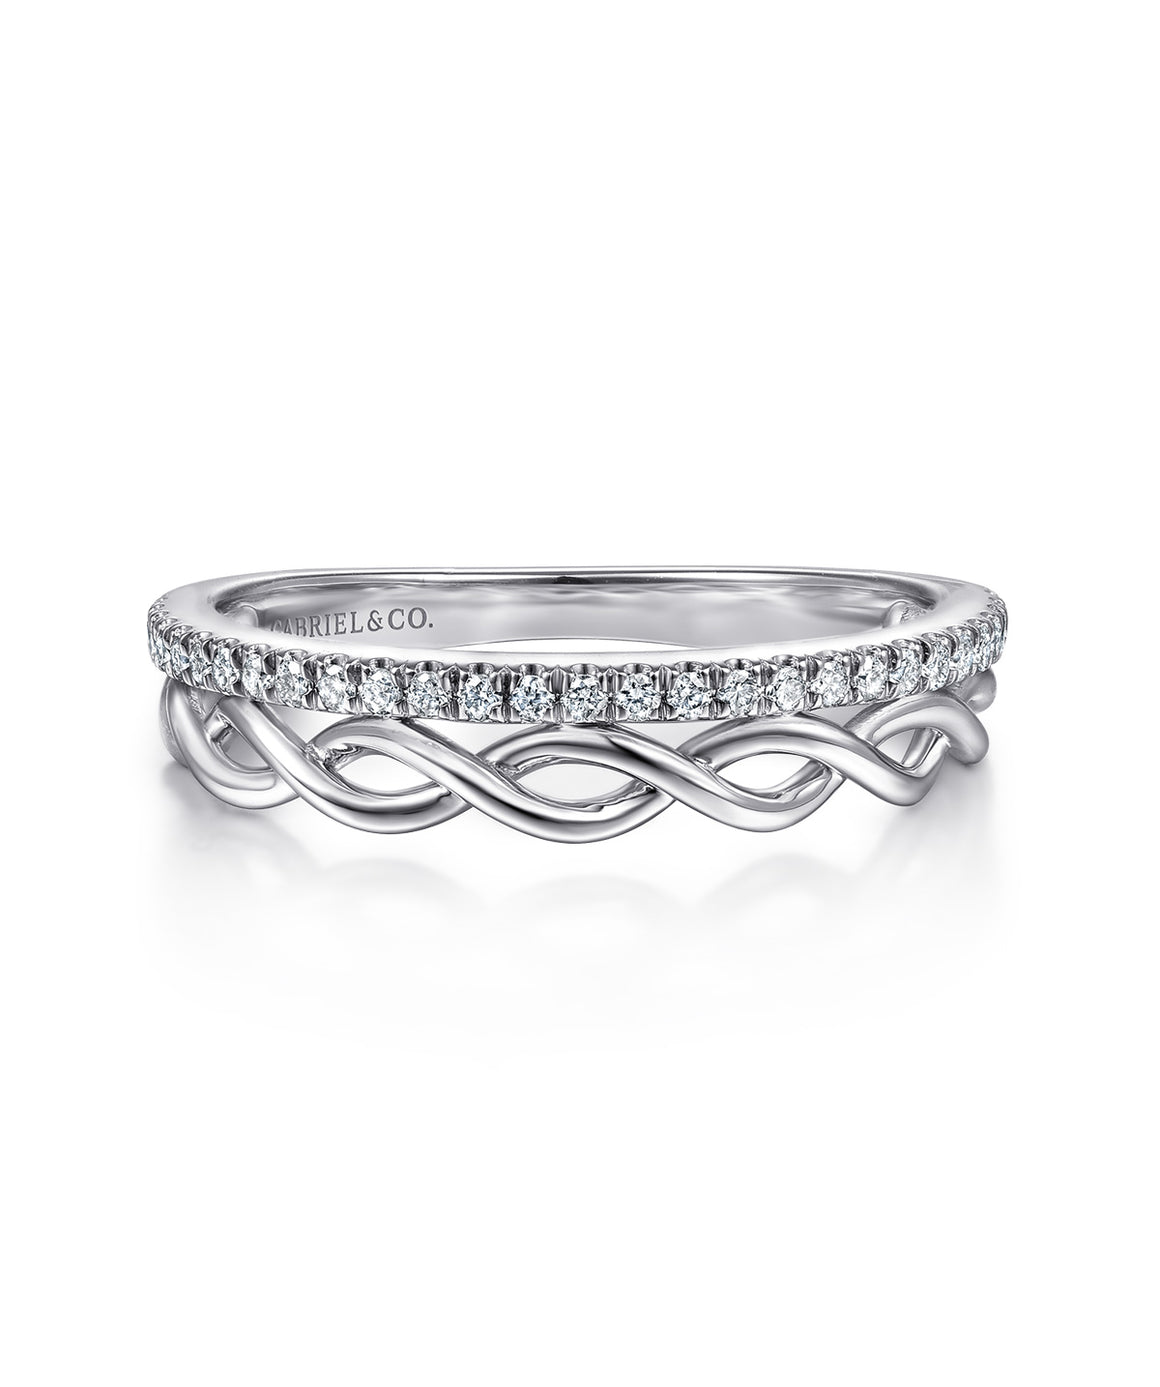 14K White Gold Braided Metal and Diamond Row Ring